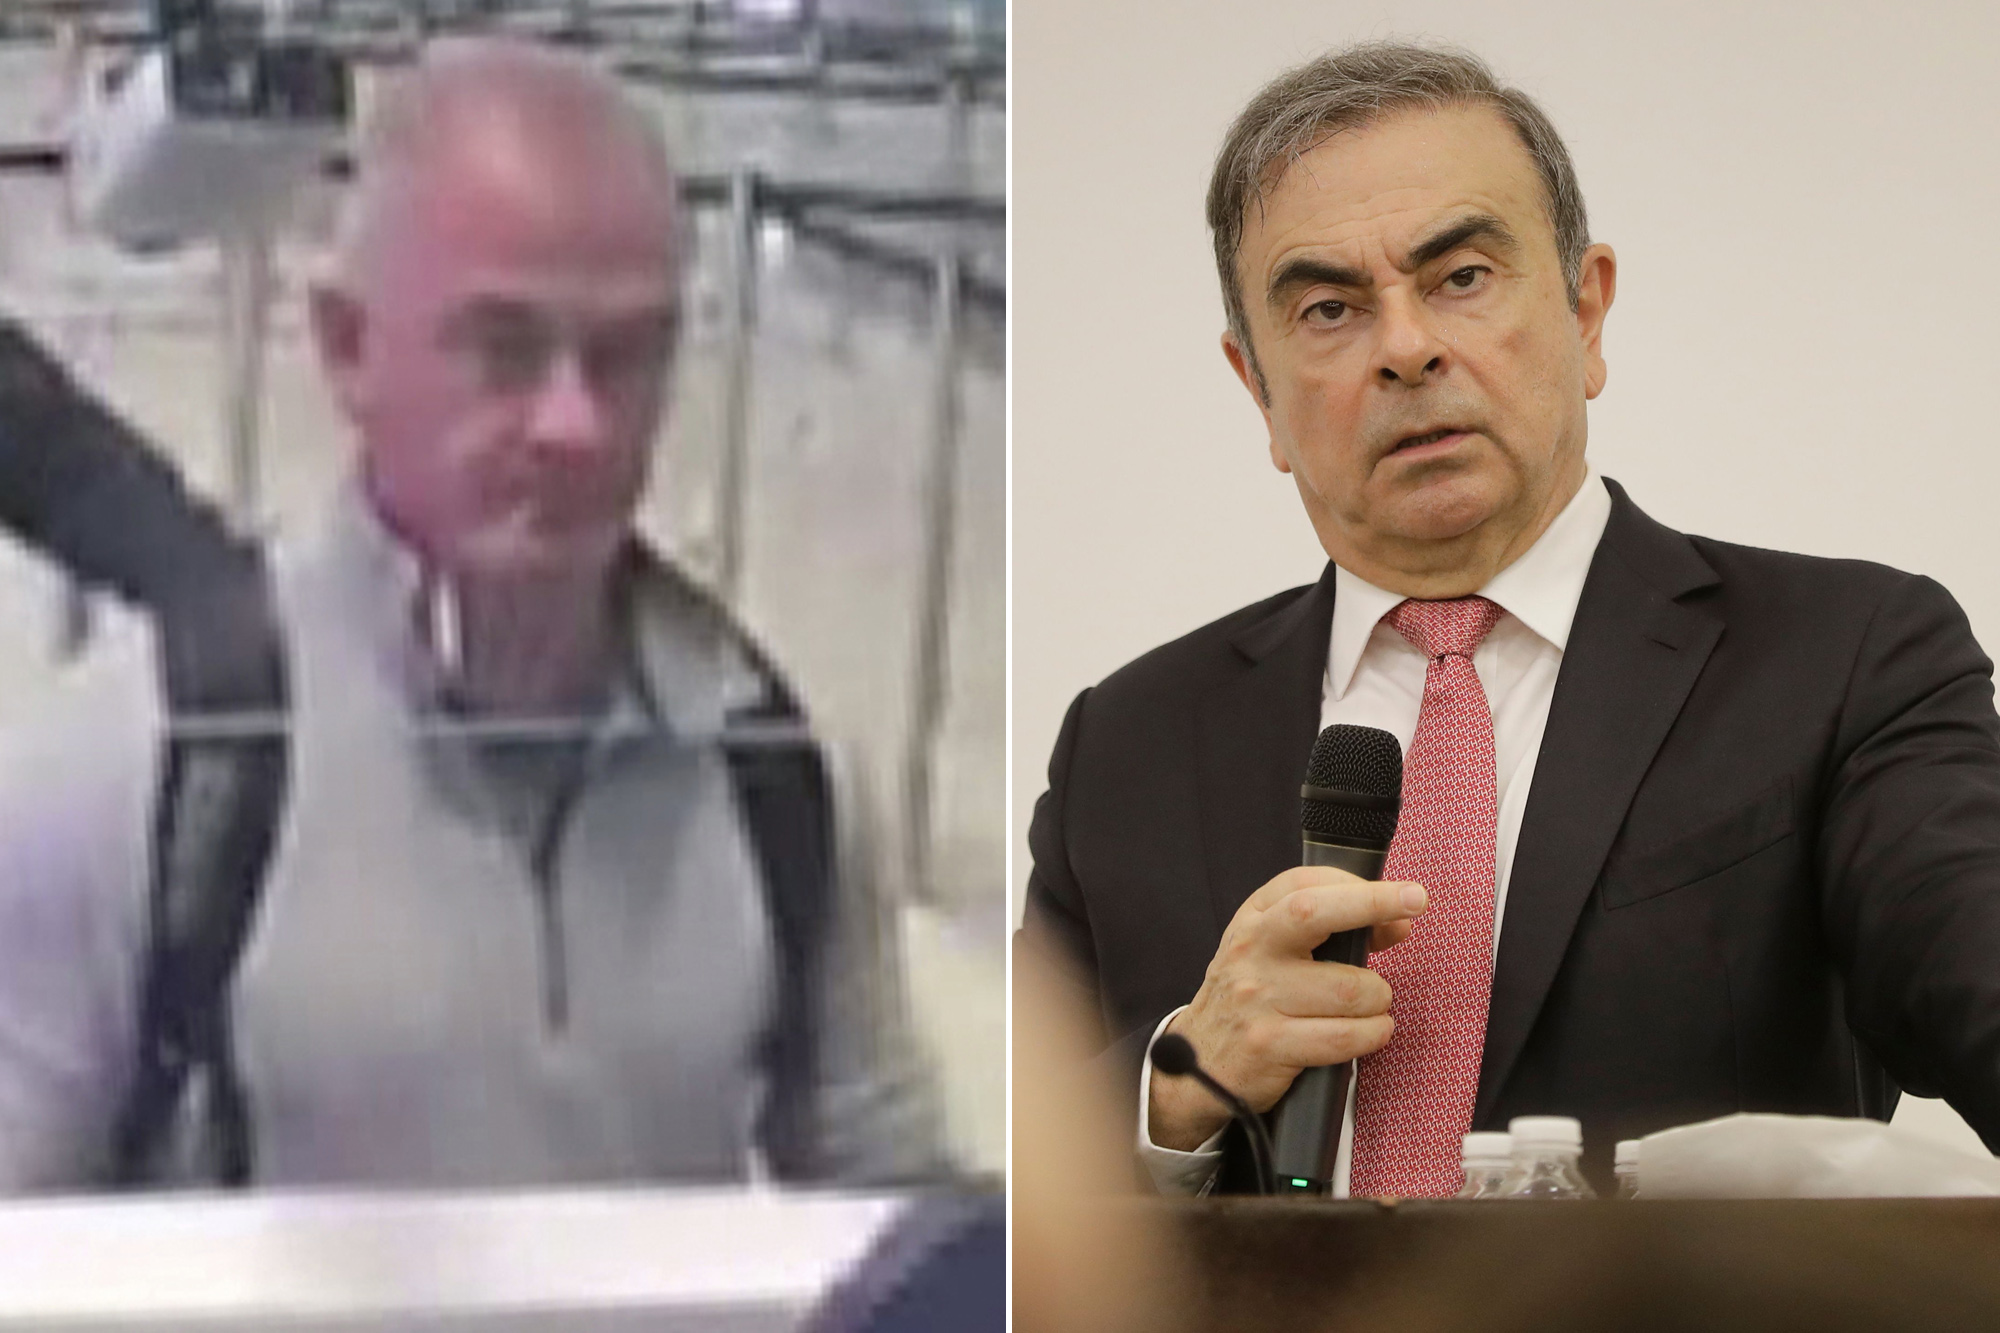 Ex-Green Beret says it wasn't a crime to help Carlos Ghosn escape